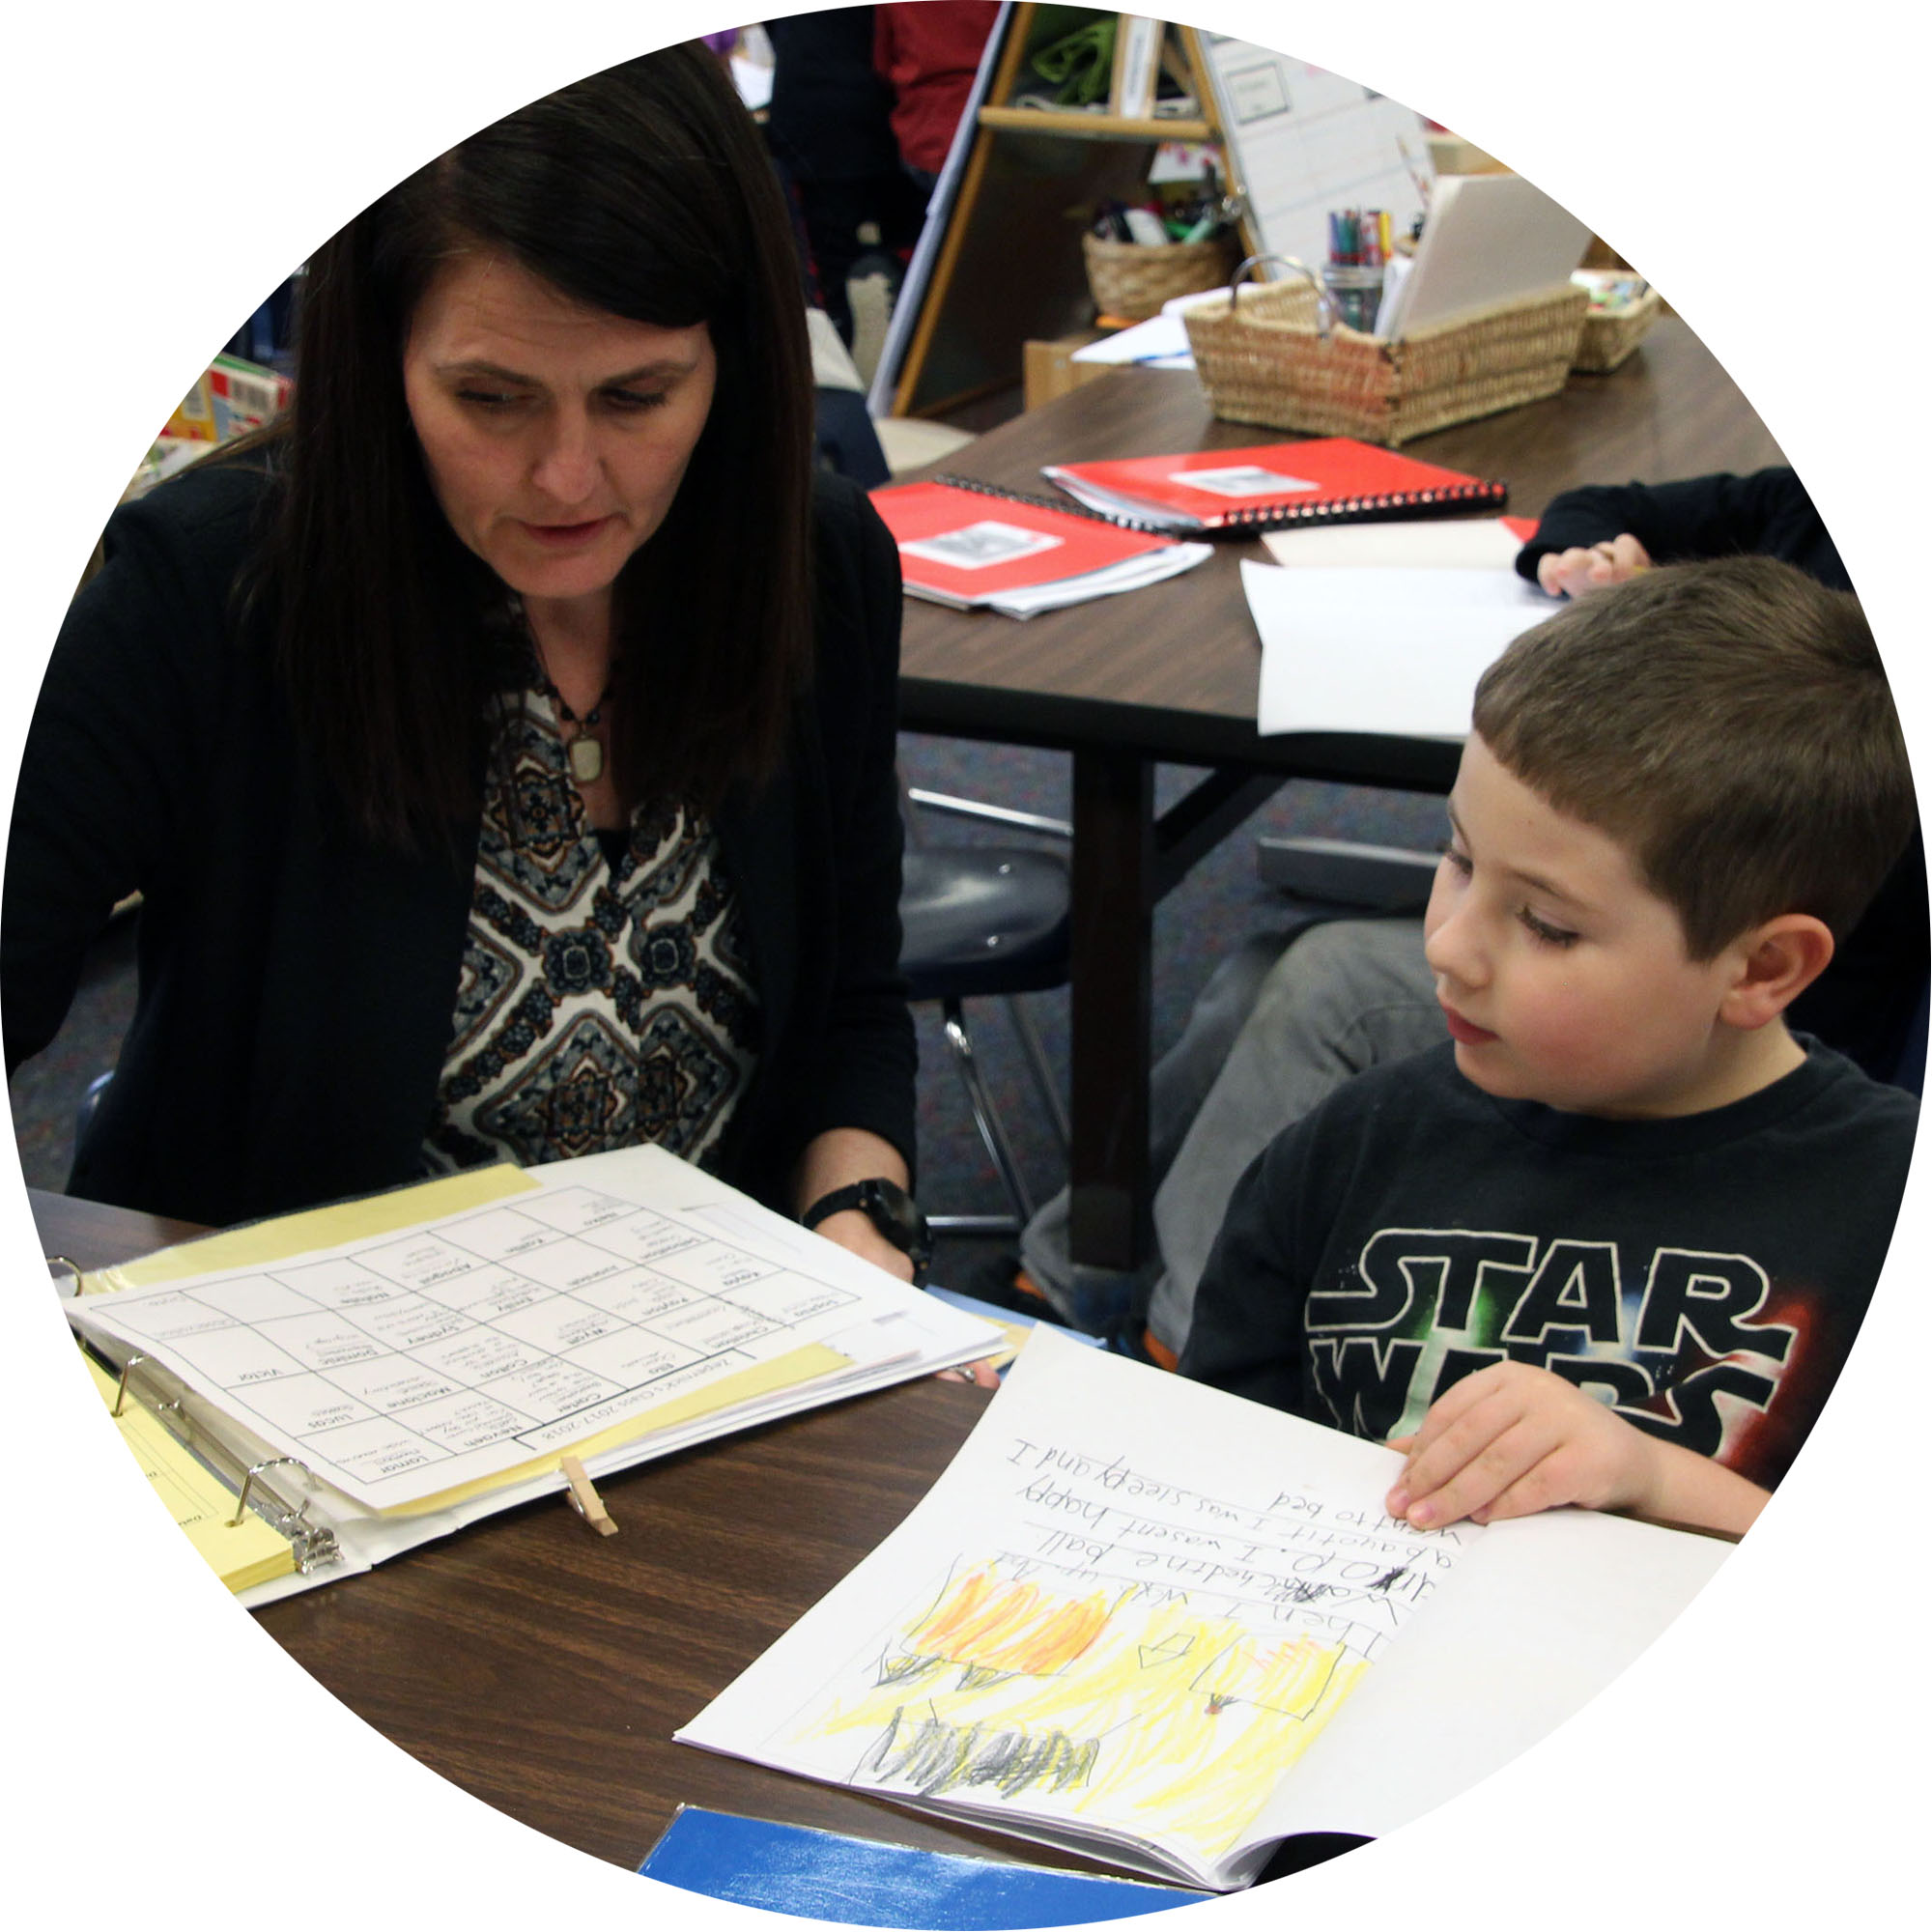 Image of teacher working one-on-one with teacher